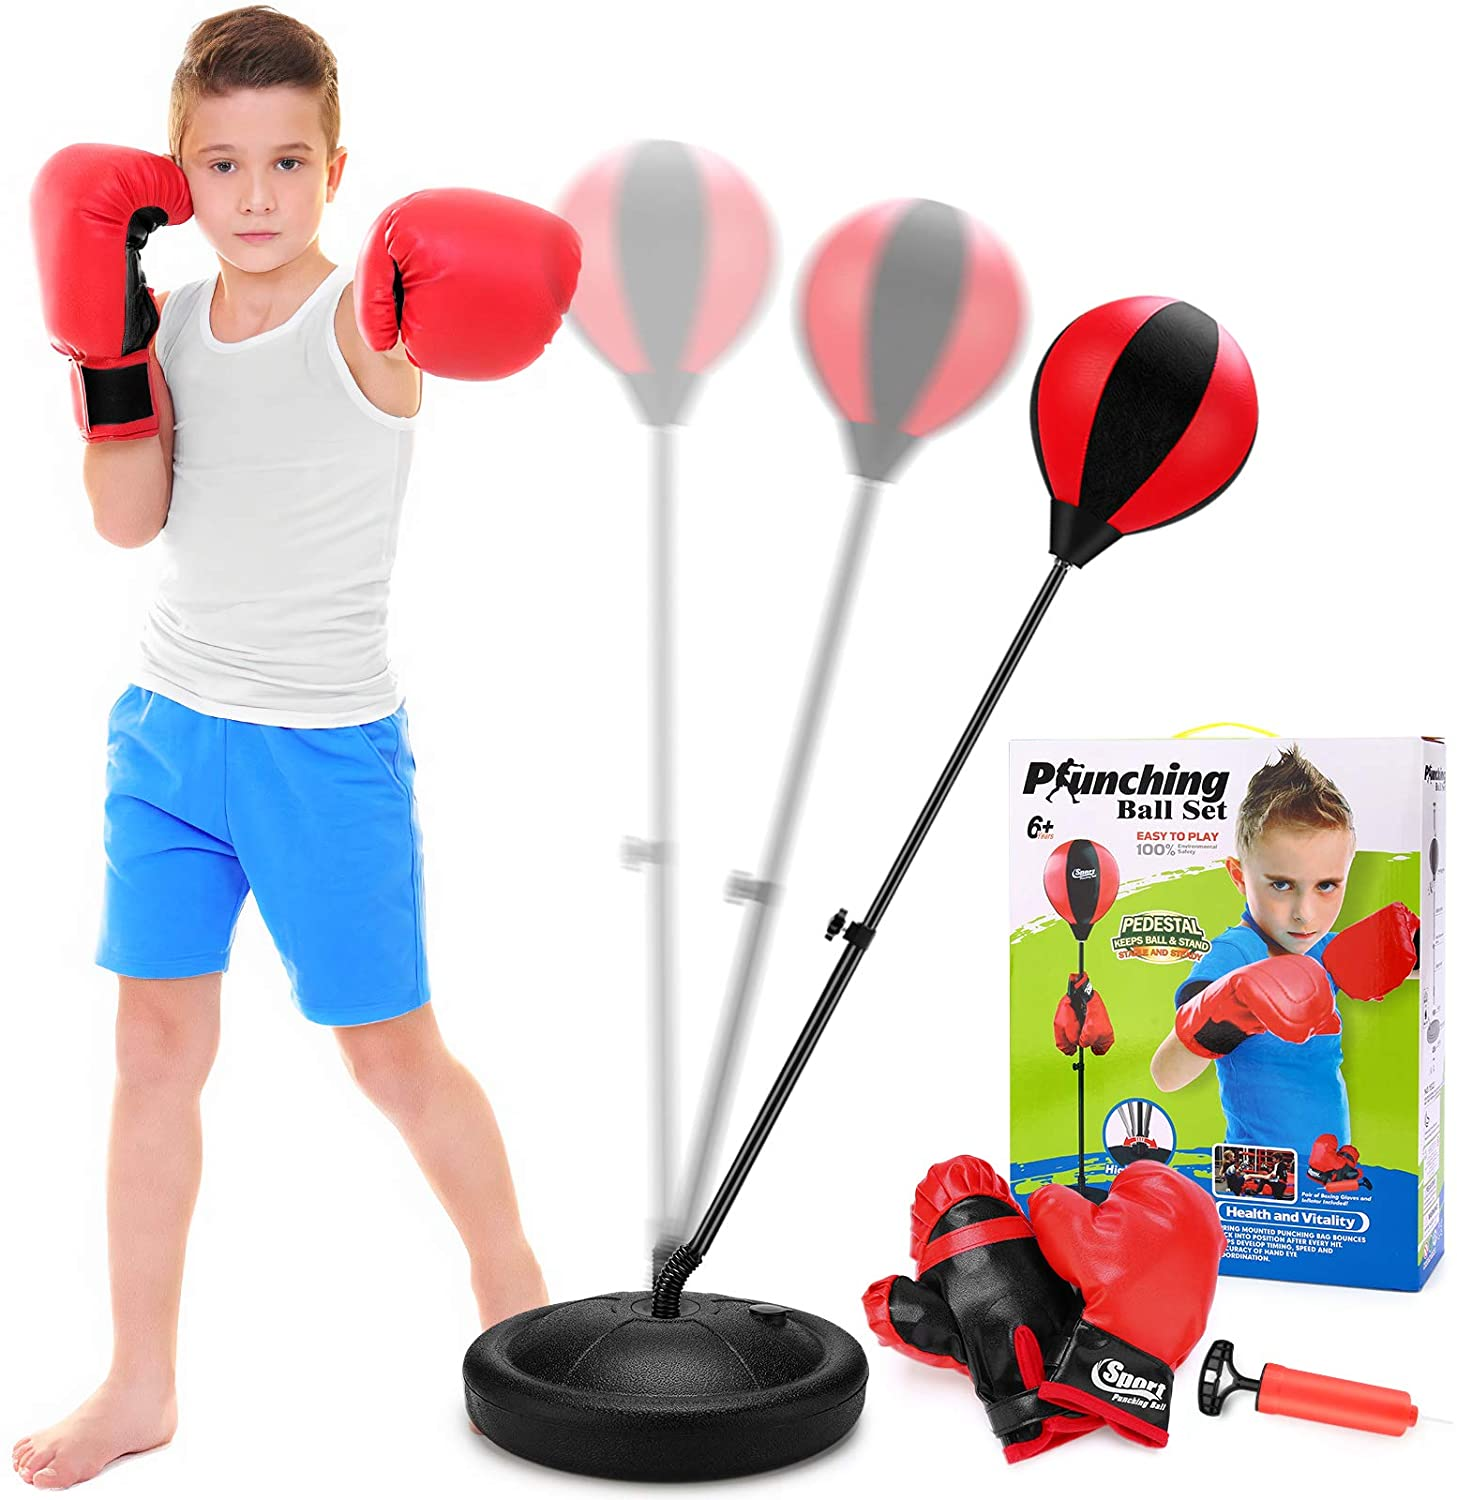 Punching Bag for Kids with Boxing Glove - Sport Boxing Sets with Adjustable Height Stand, Great Exercise & Fun Activity for Kids, Top Gifting Idea, Boxing Sport Toys for 3-7 Years Old Boys & Girls